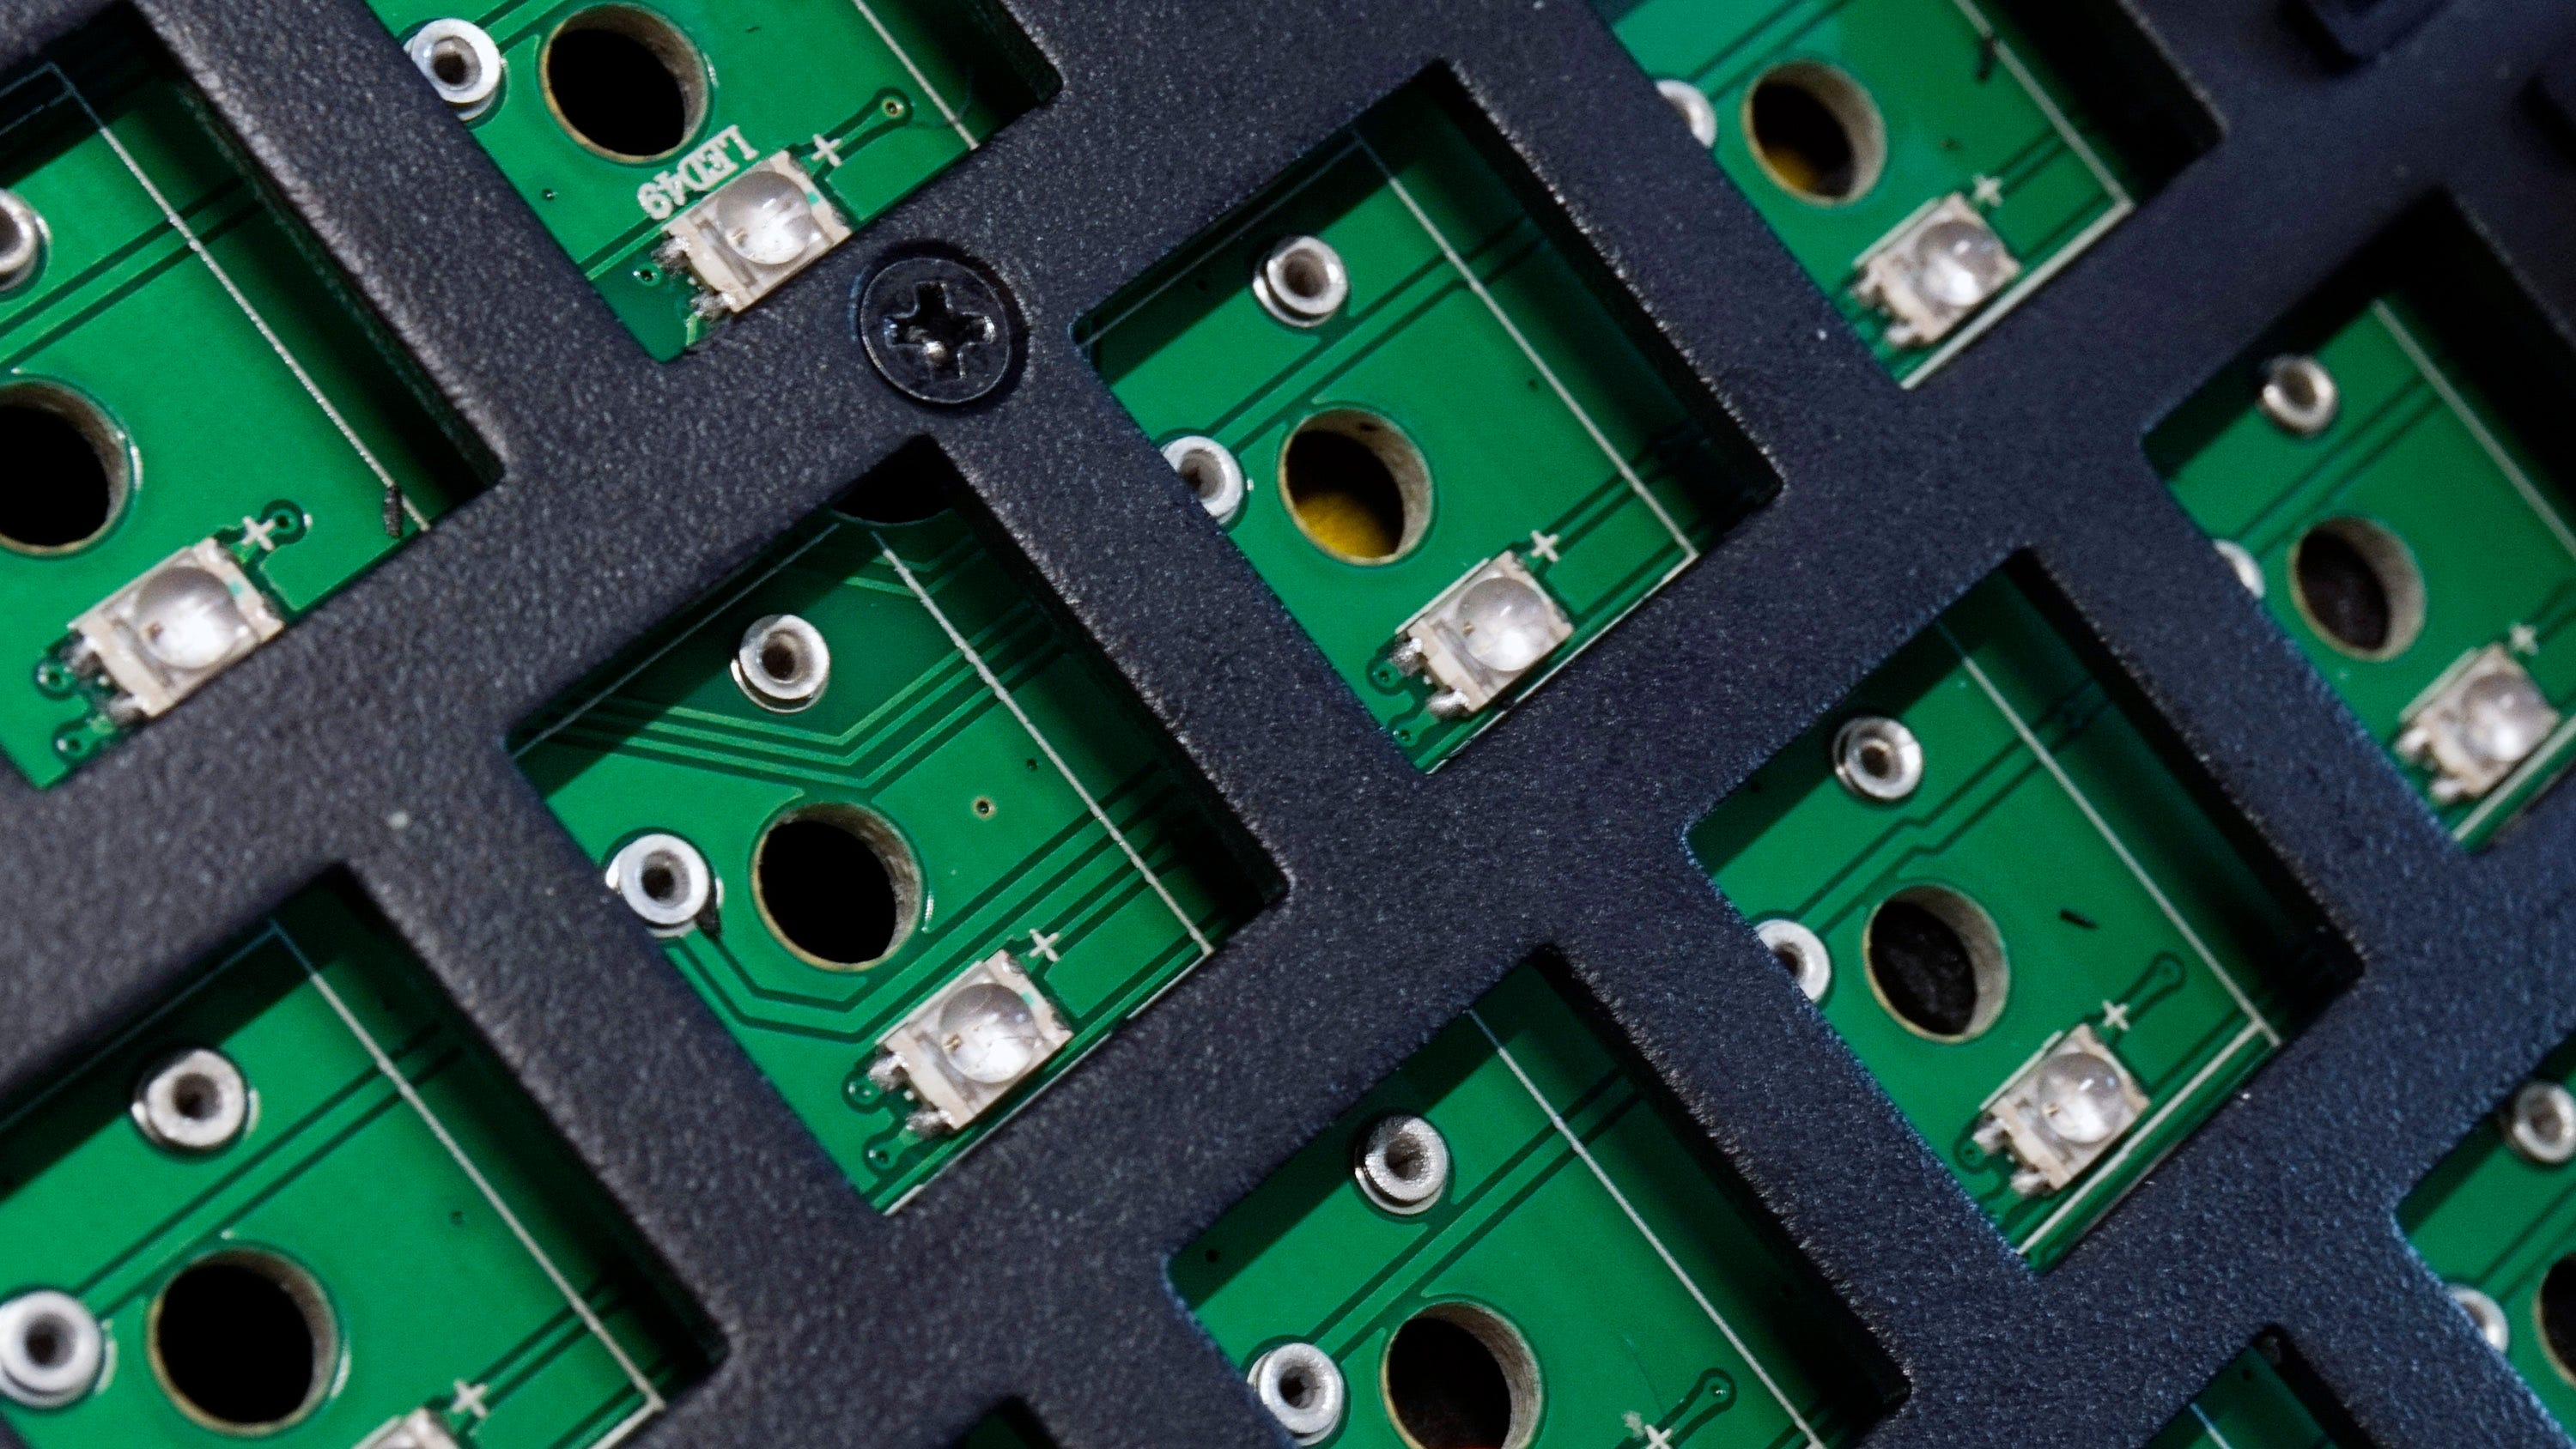 The LEDs on the circuit board are much too tall and wide for many switches to fit.